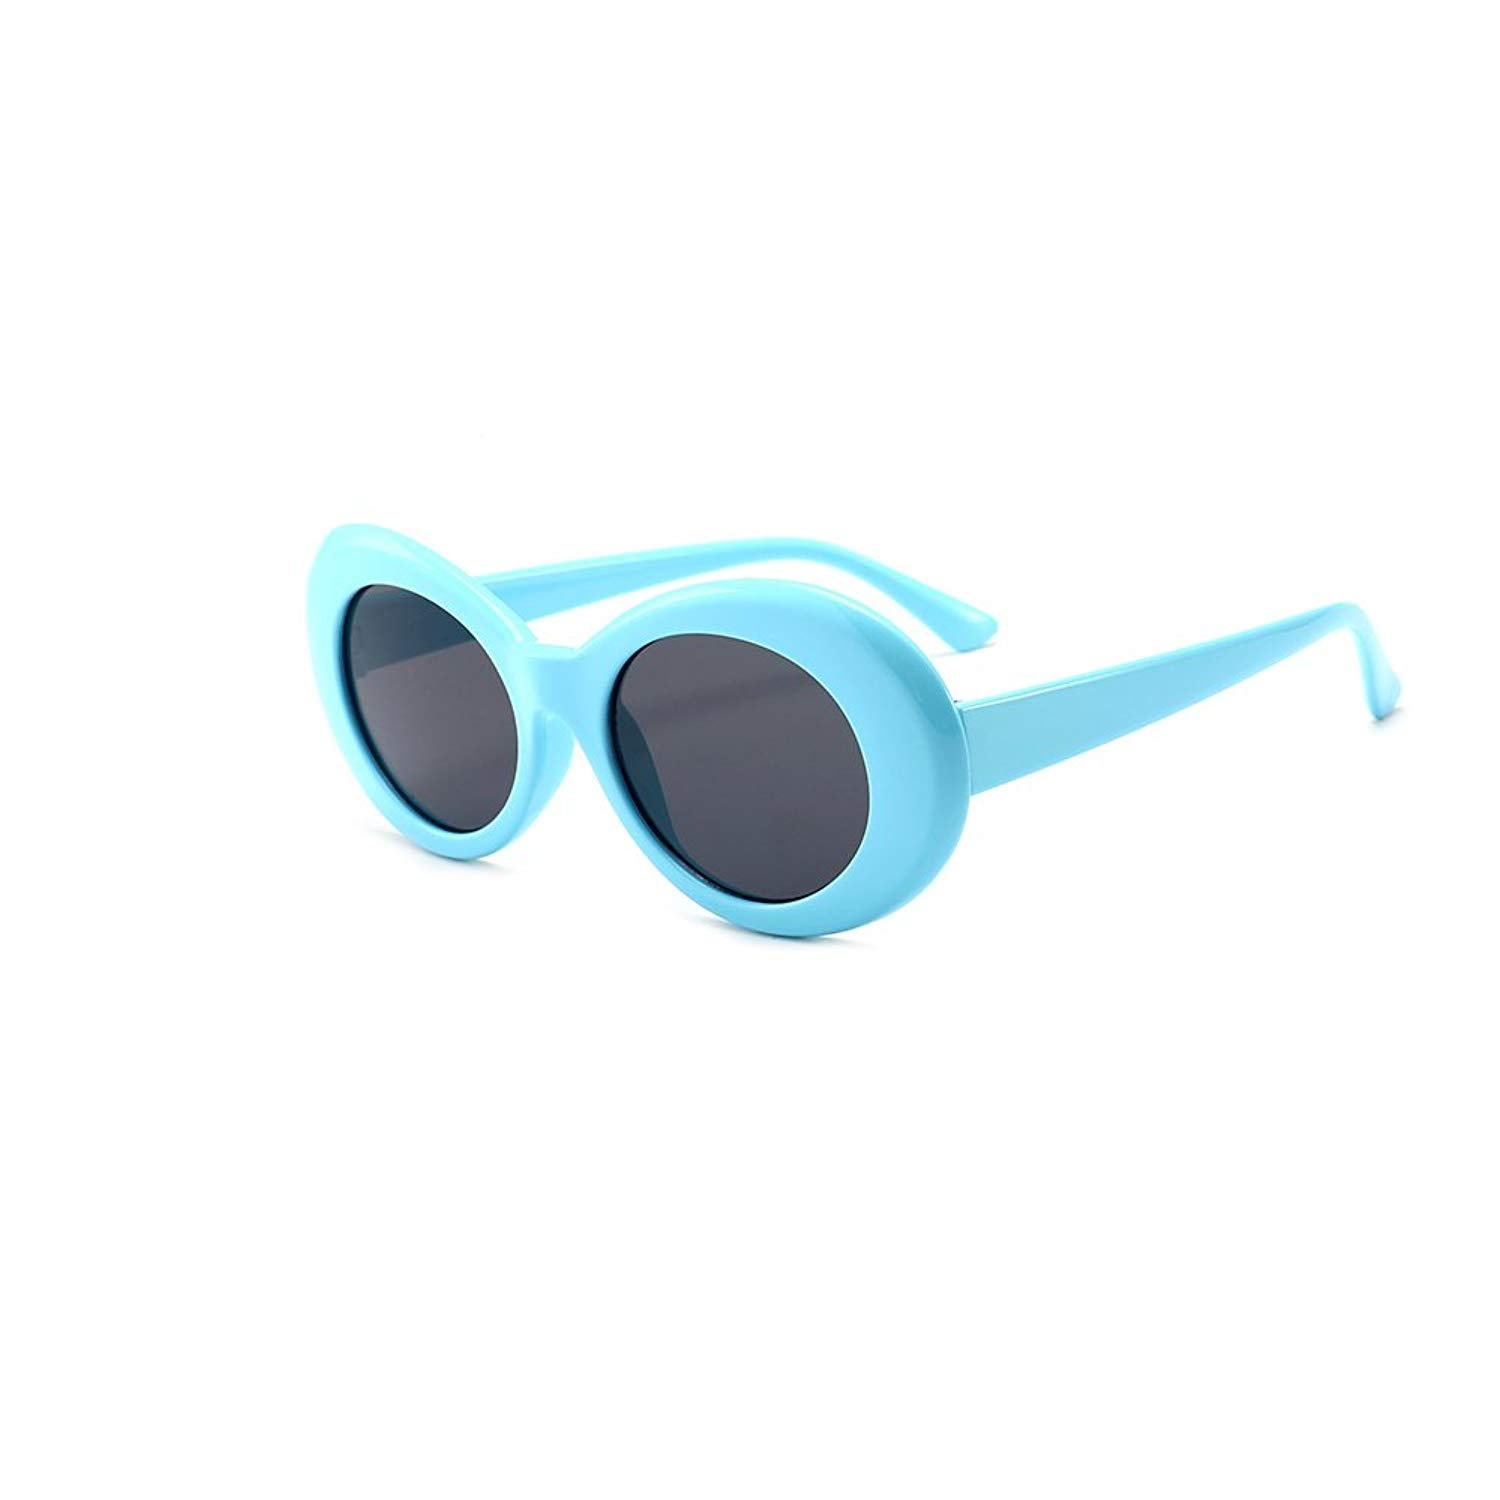 27f56733dee5 Get Quotations · HonkTai Oval Fashion Sunglasses Womens Sunglasses Beach  Sunglasses Surf Sunglasses Sport Sunglasses